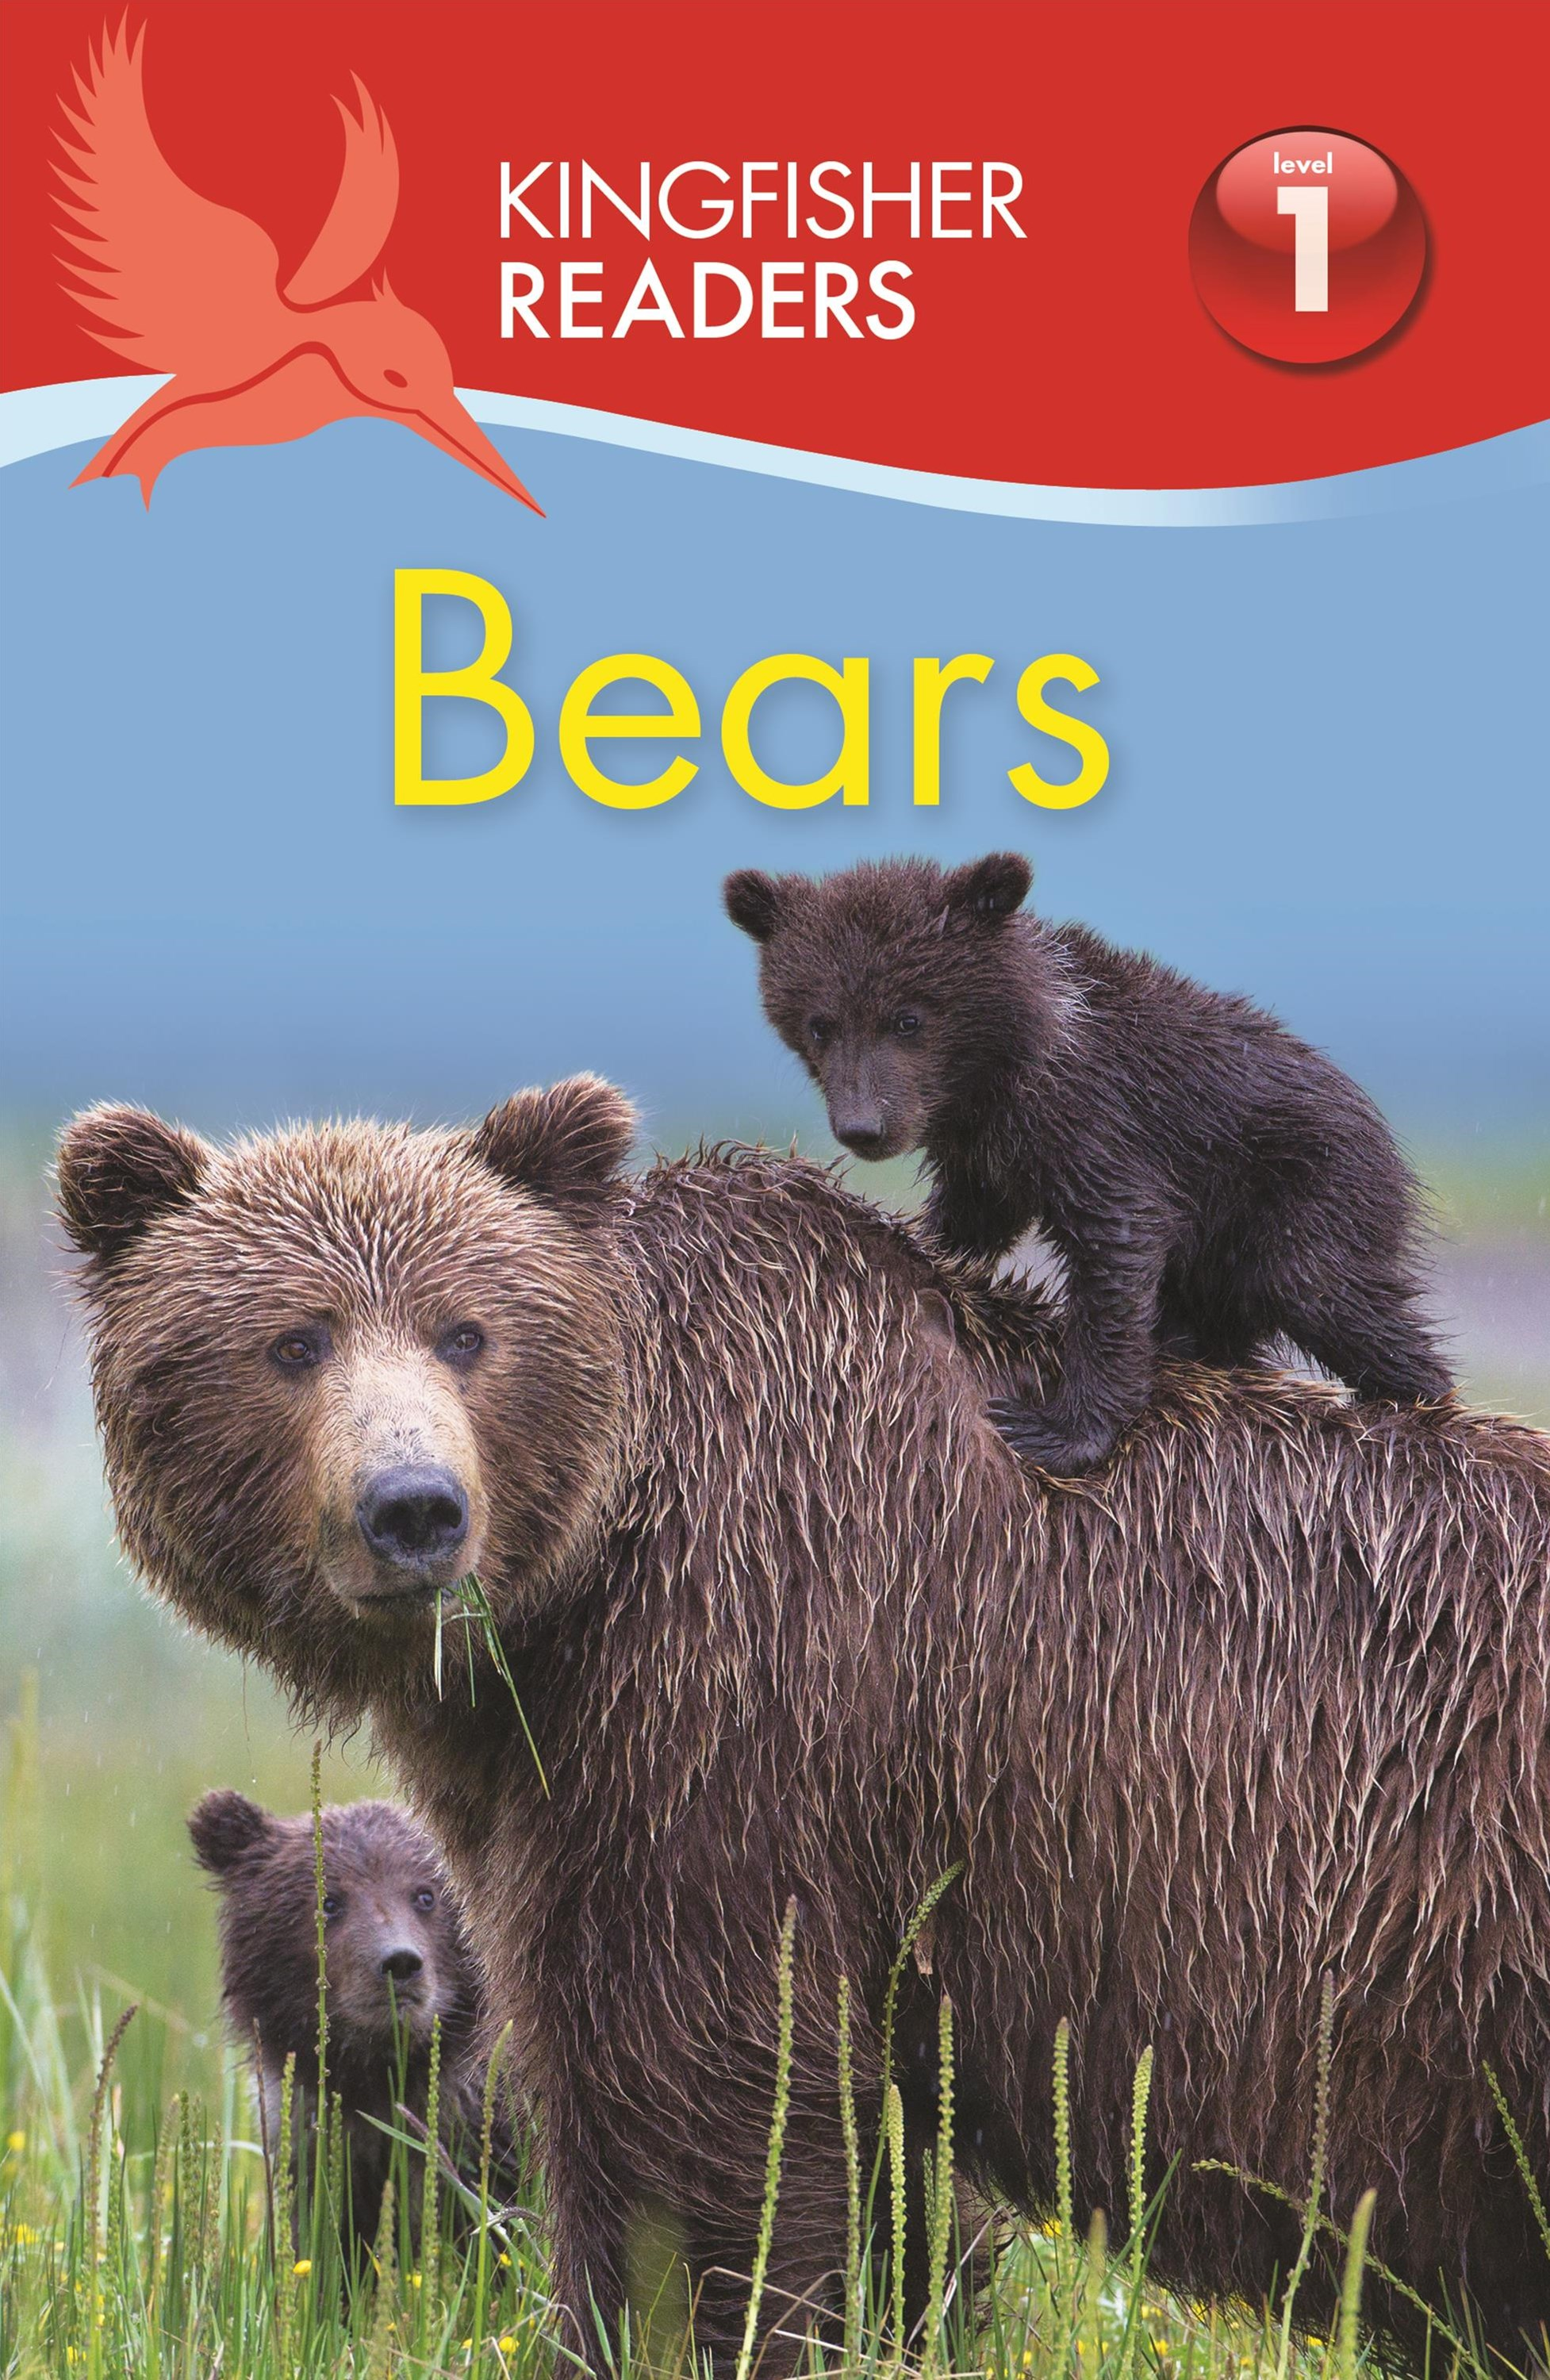 Kingfisher Readers L1: Bears